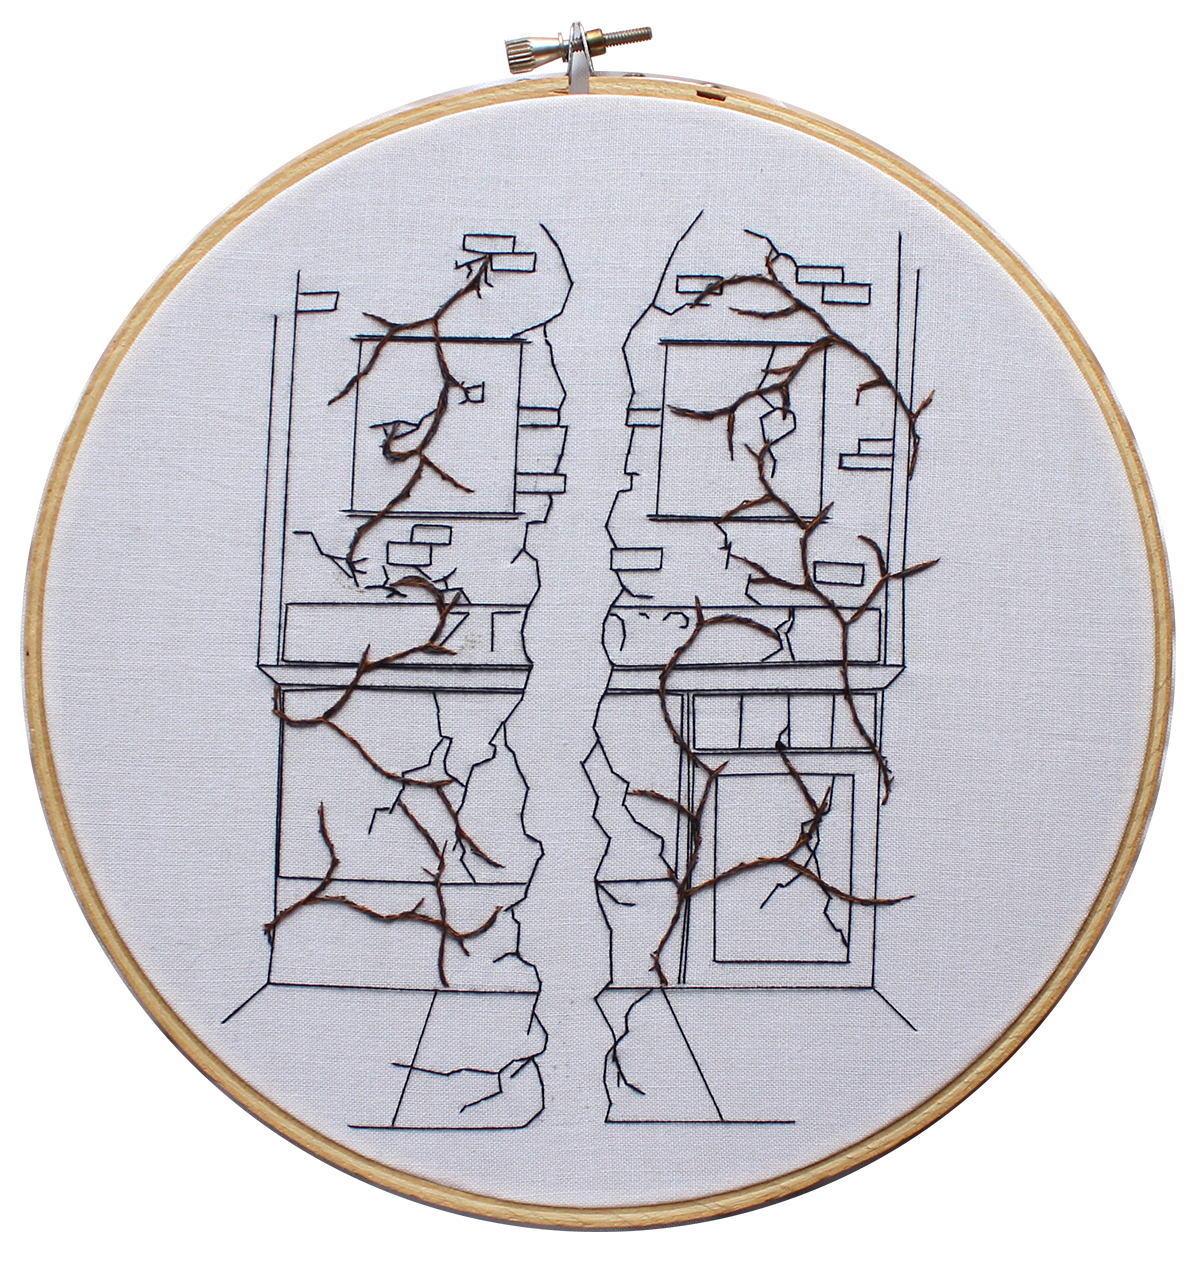 Embroidery of a restaurant's exterior cracked in half with vines growing everywhere.